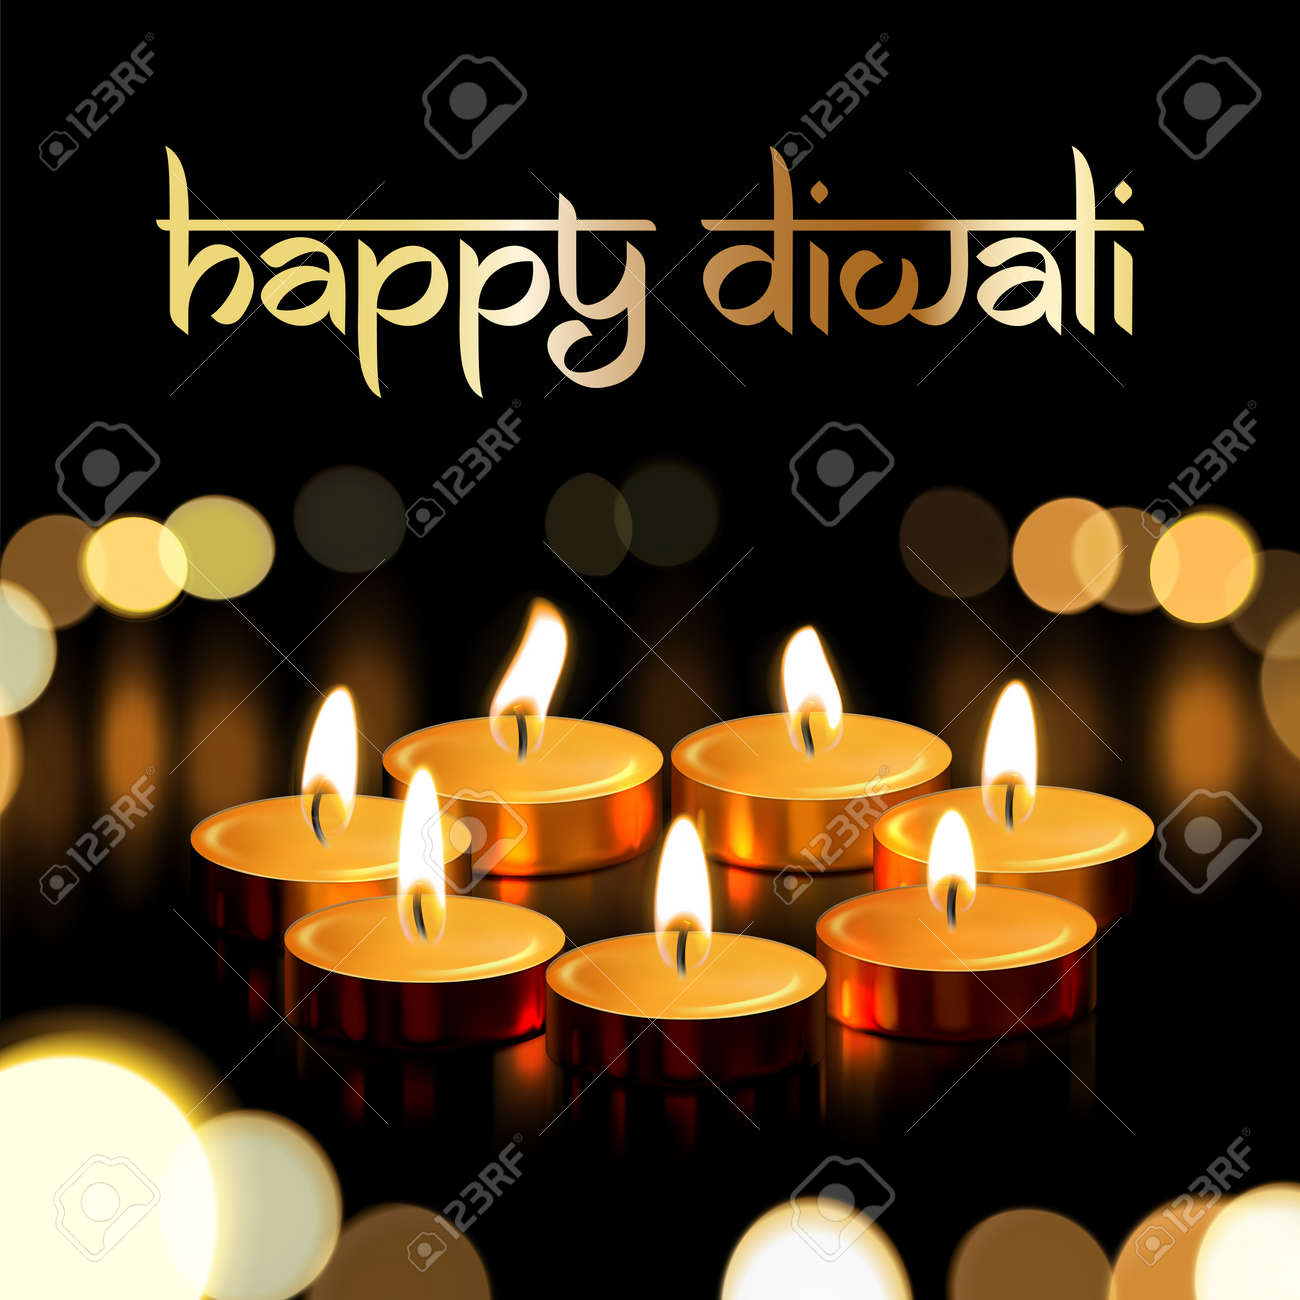 Happy diwali indian greeting card for traditional festival of happy diwali indian greeting card for traditional festival of lights holiday deepavali vector gold candle m4hsunfo